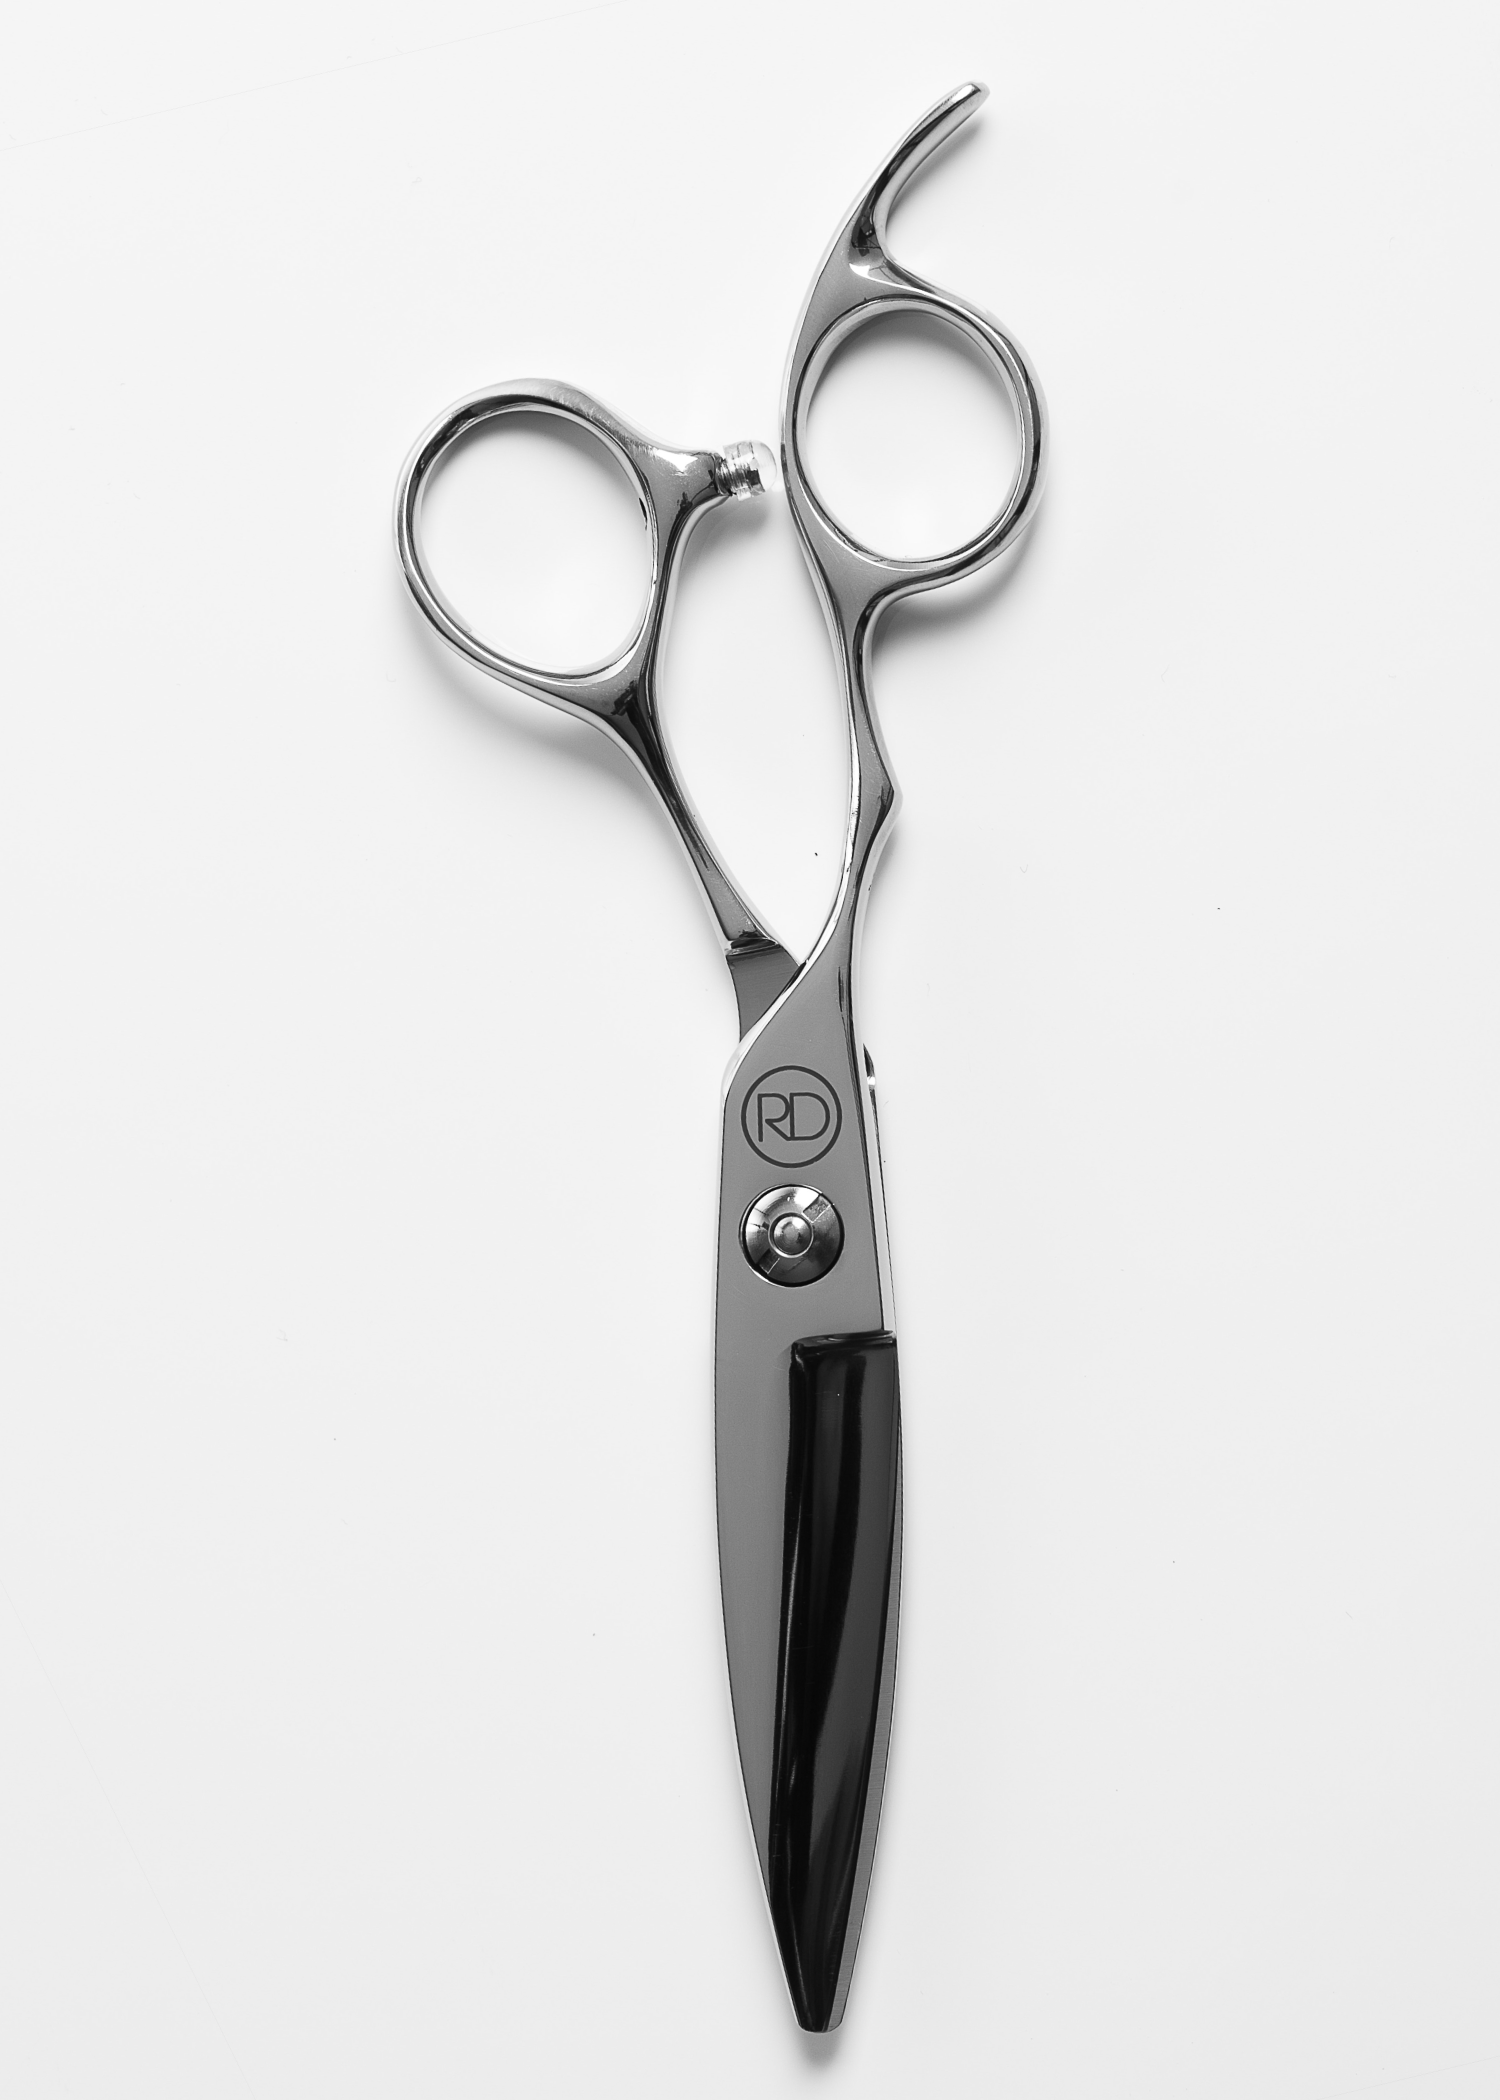 ARID L | RD Professional Haircutting Scissors Shears